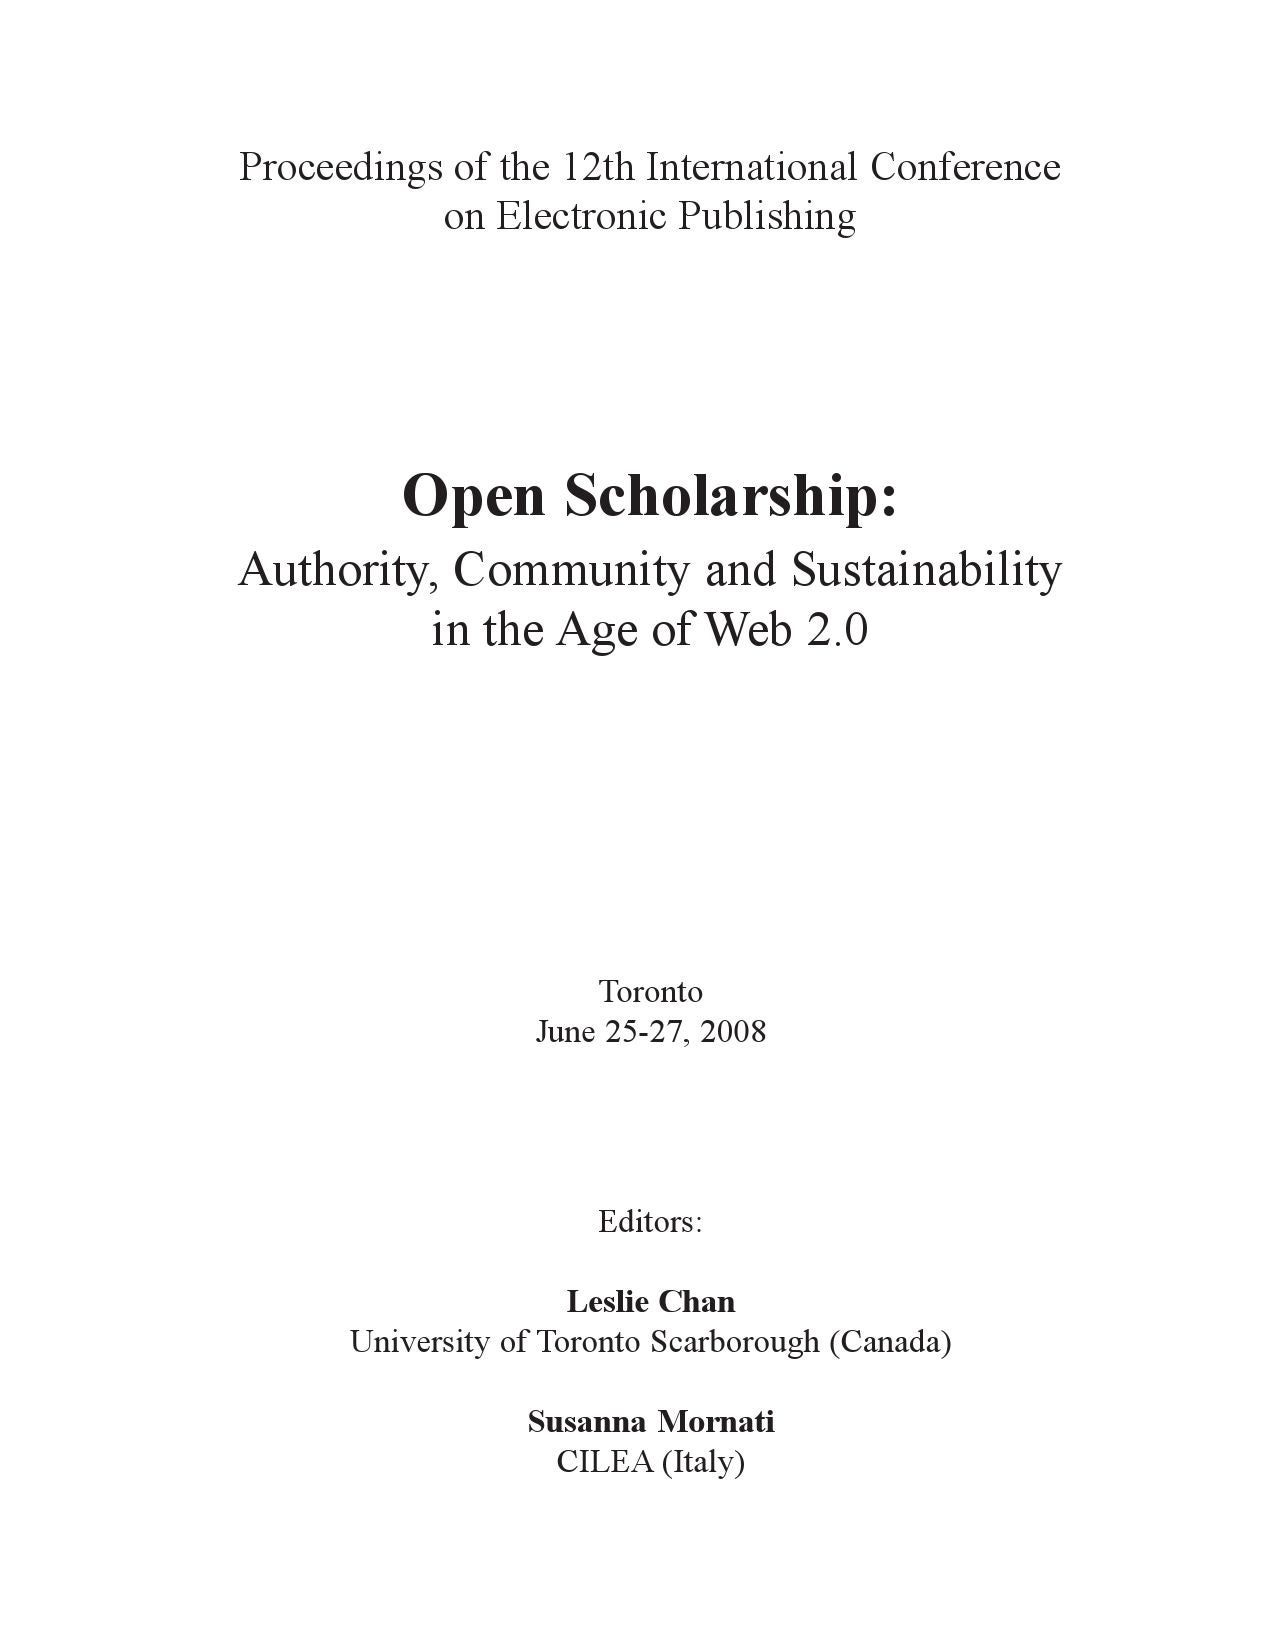 Open scholarship by leslie chan issuu fandeluxe Choice Image